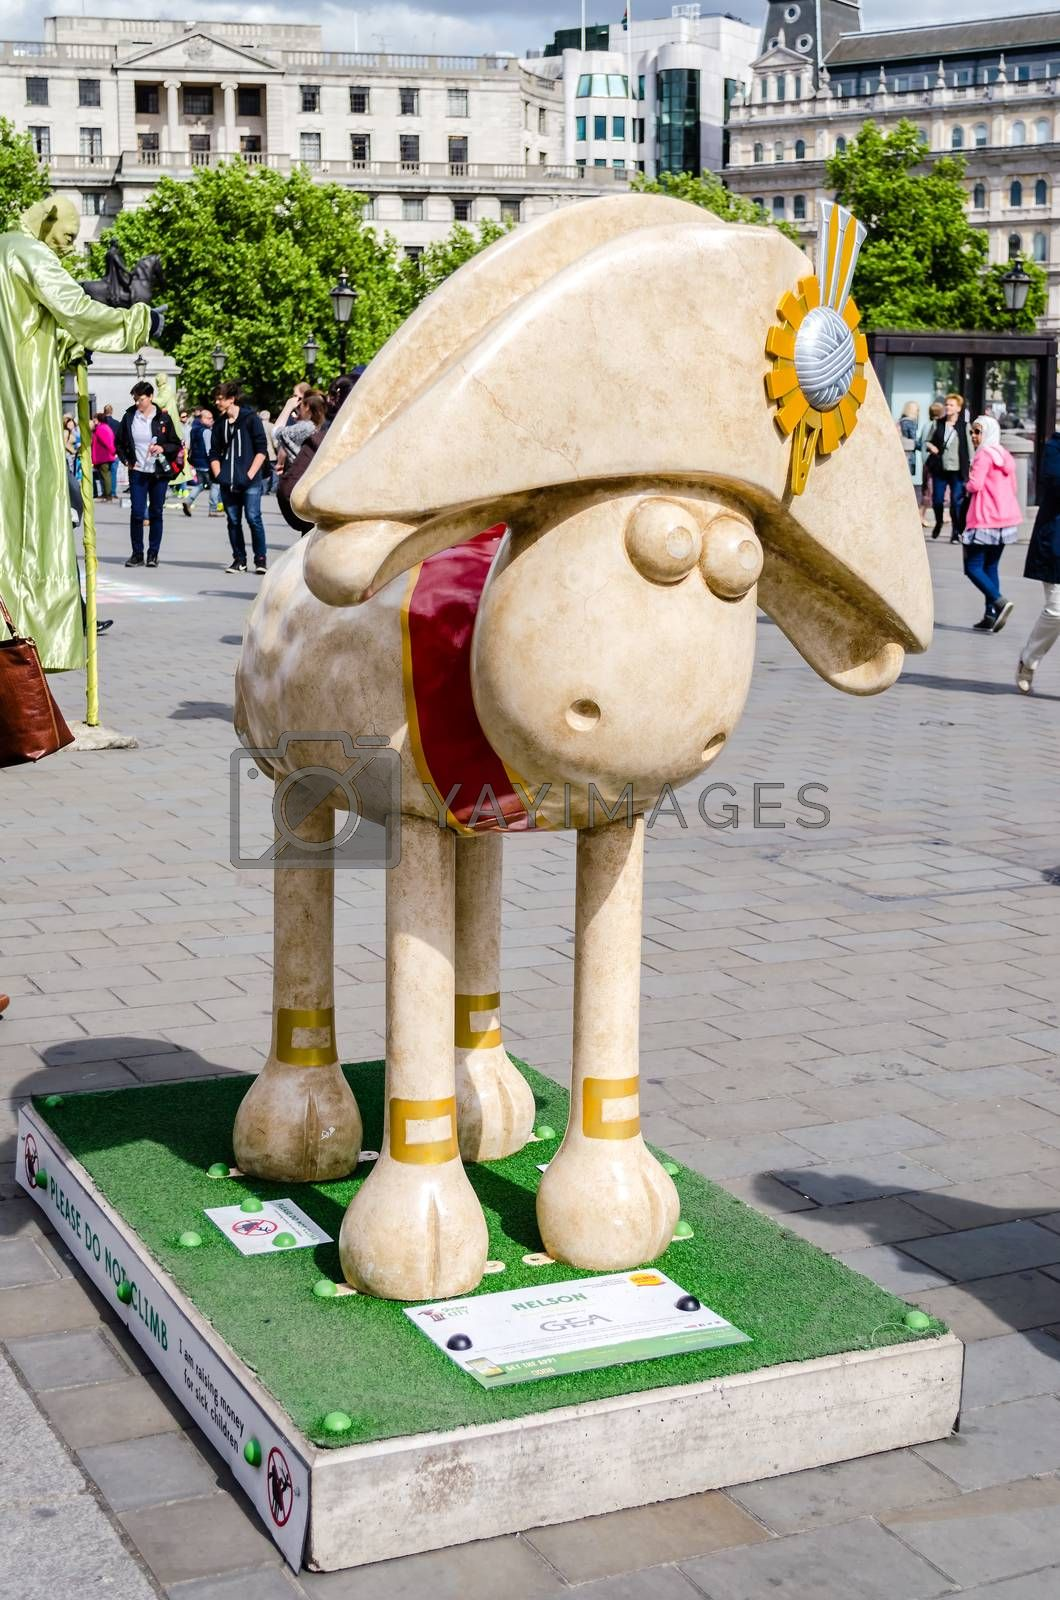 LONDON - MAY 28: Aardman's Shaun the Sheep character on display in Trafalgar Square, London, May 28, 2015.